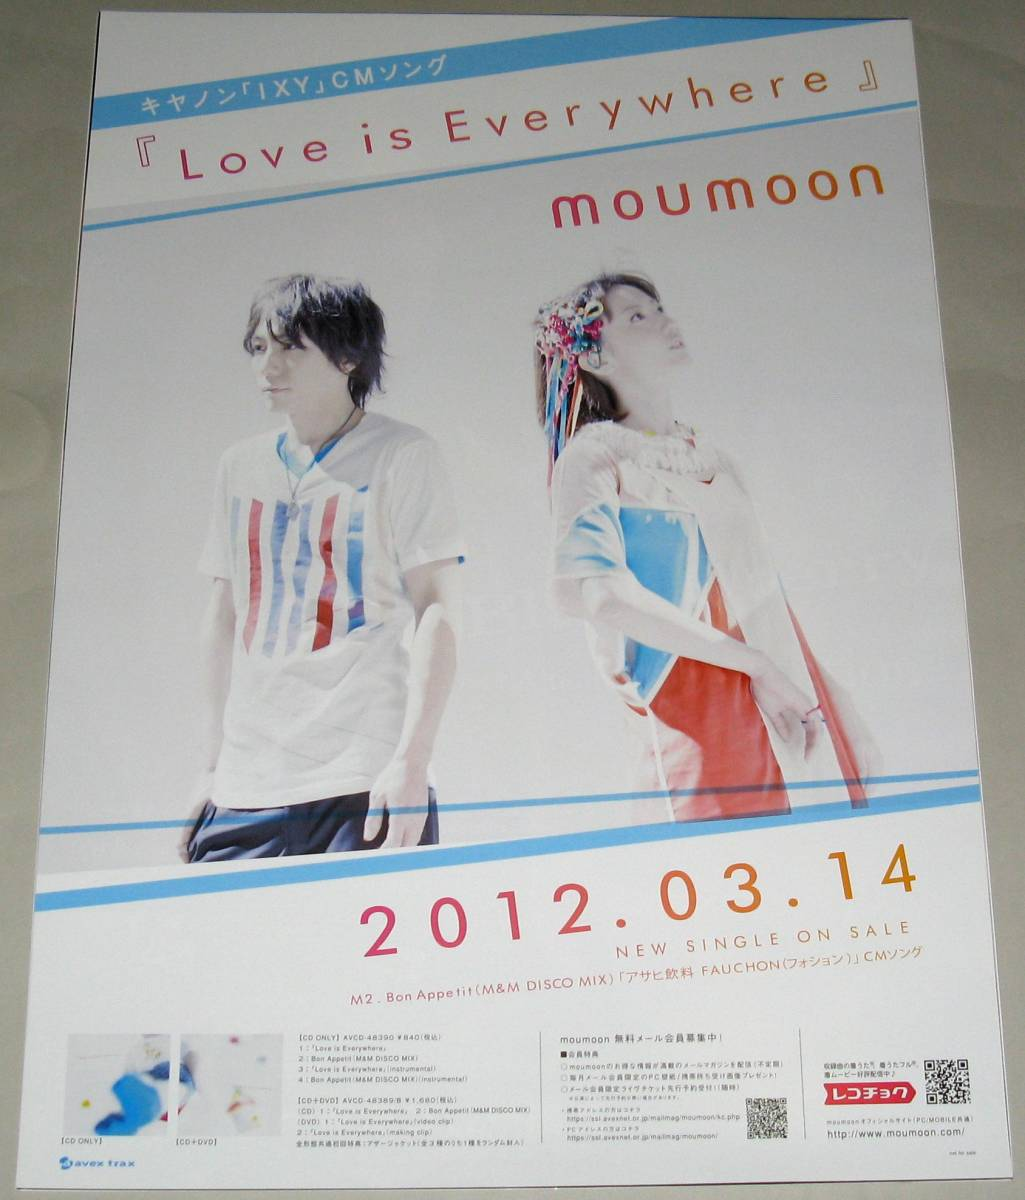 Γ15 告知ポスター moumoon[Love is Everywhere]